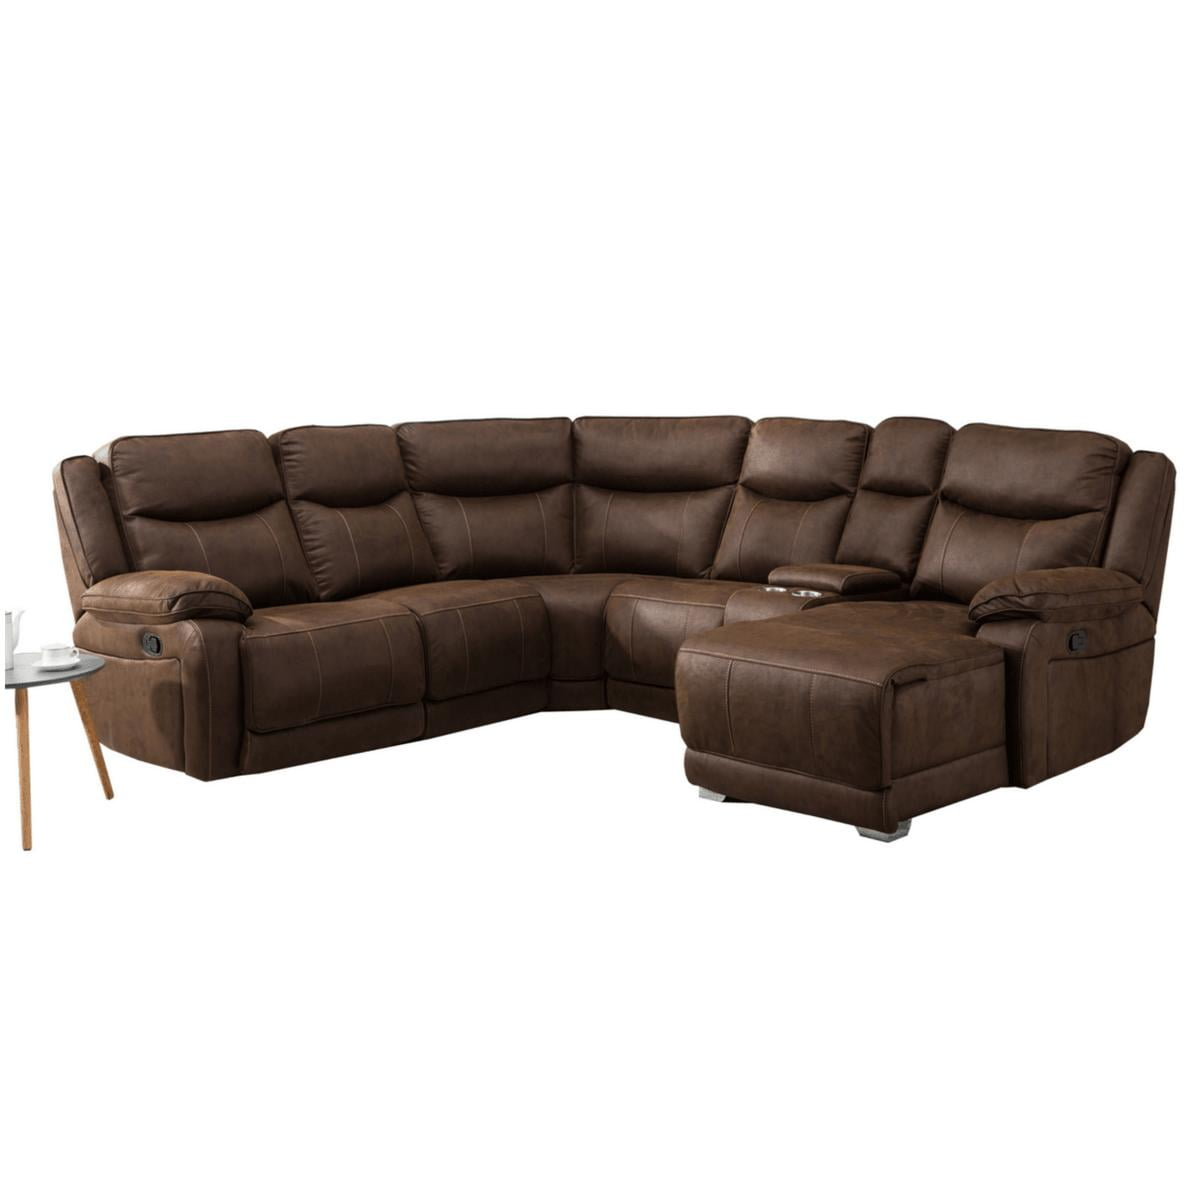 Brown Fabric Corner Suite with Cup Holder - Plymouth